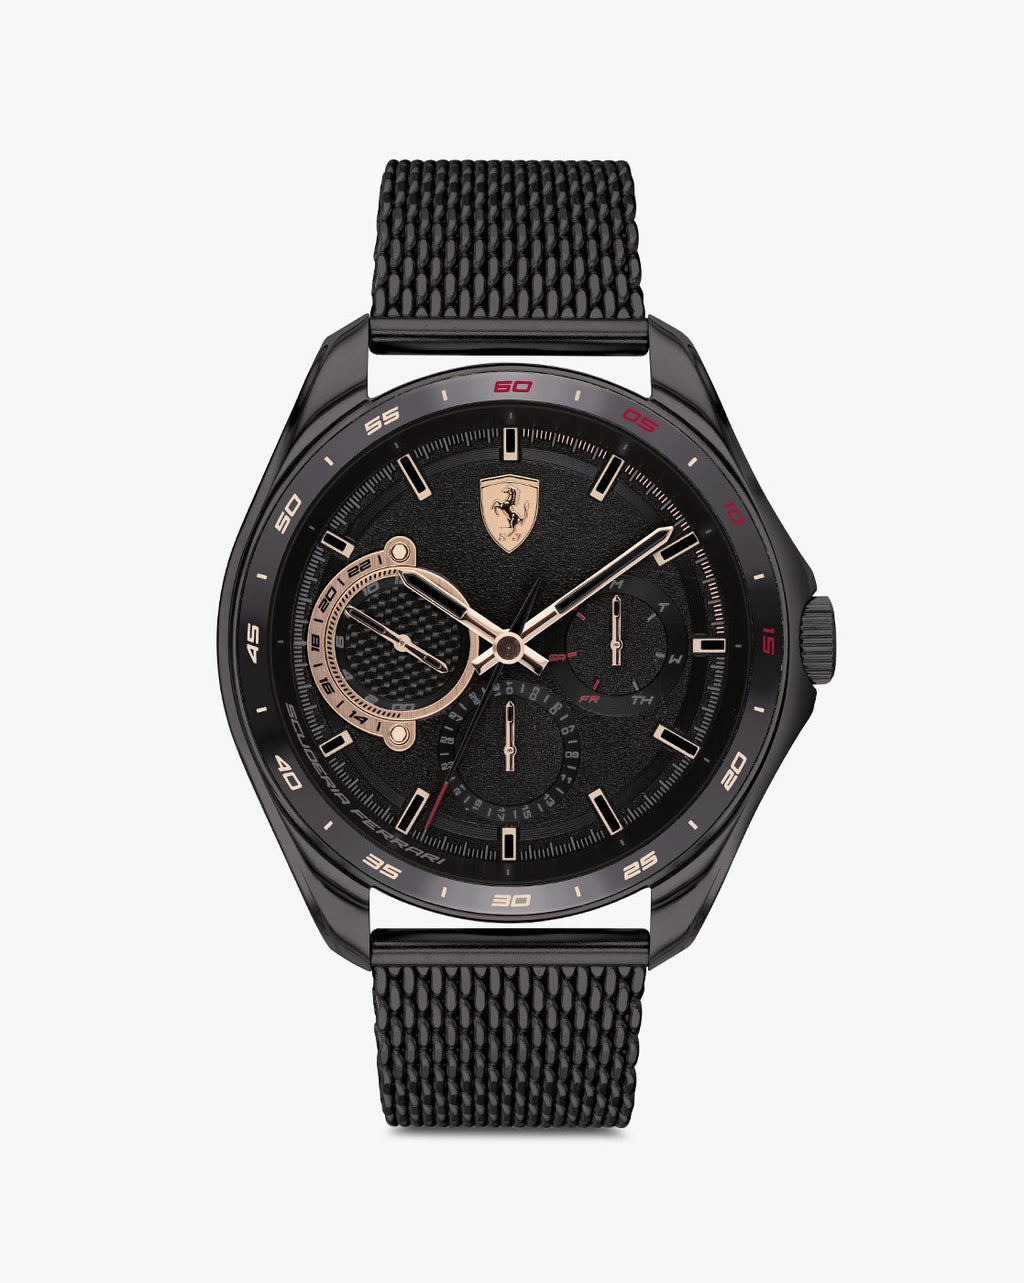 830686 Chronograph Watch with Textured Dial